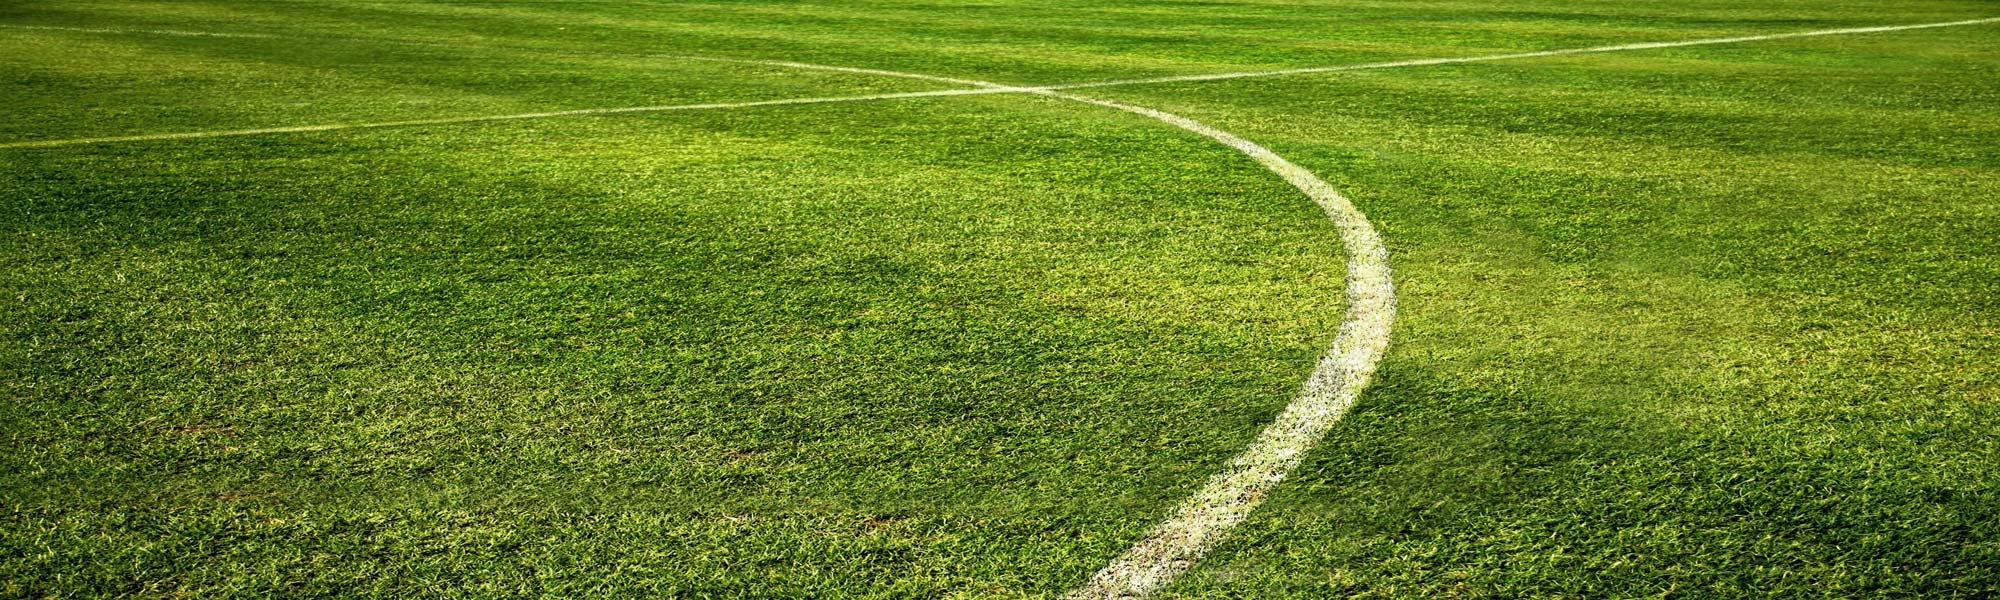 Grassy soccer field showing painted lines